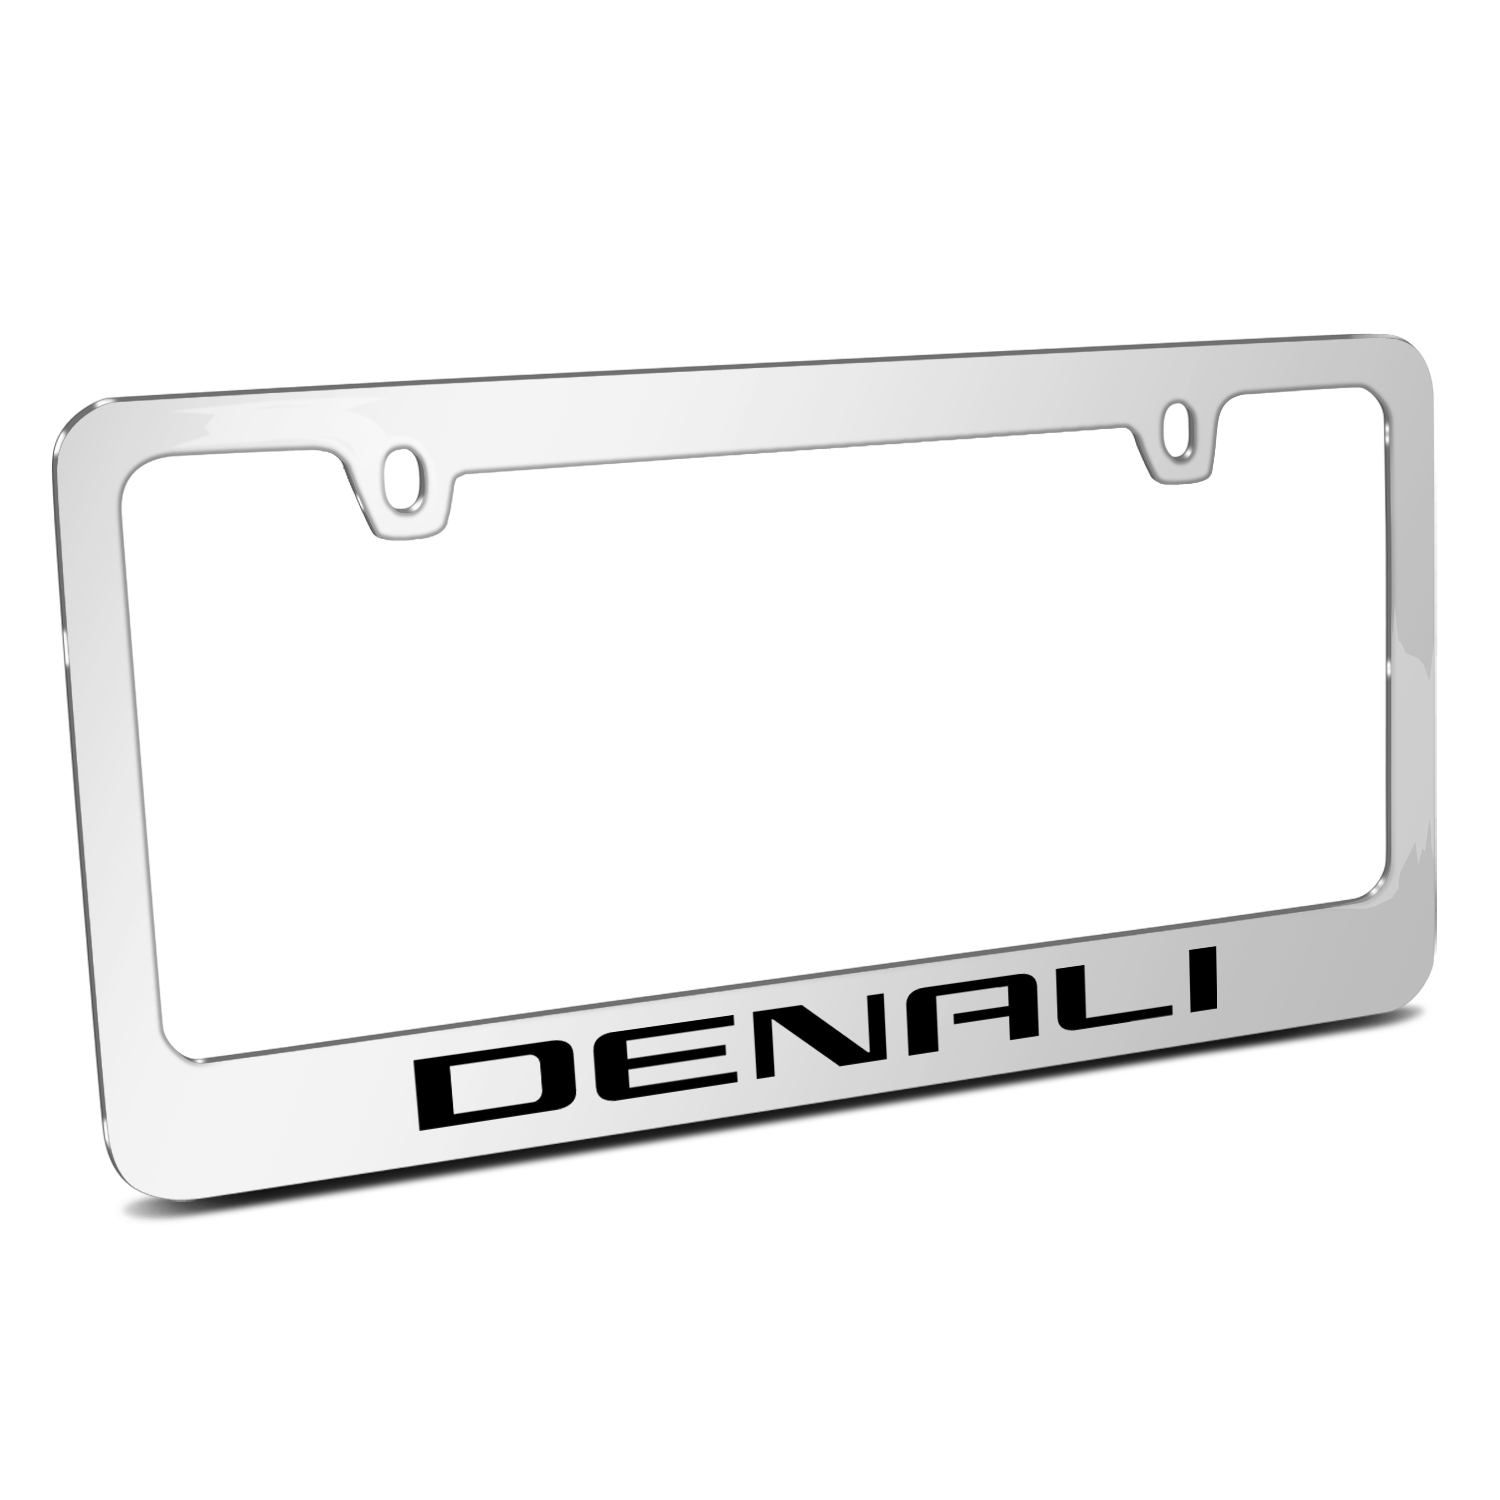 GMC Denali 2014 Mirror Chrome Metal License Plate Frame